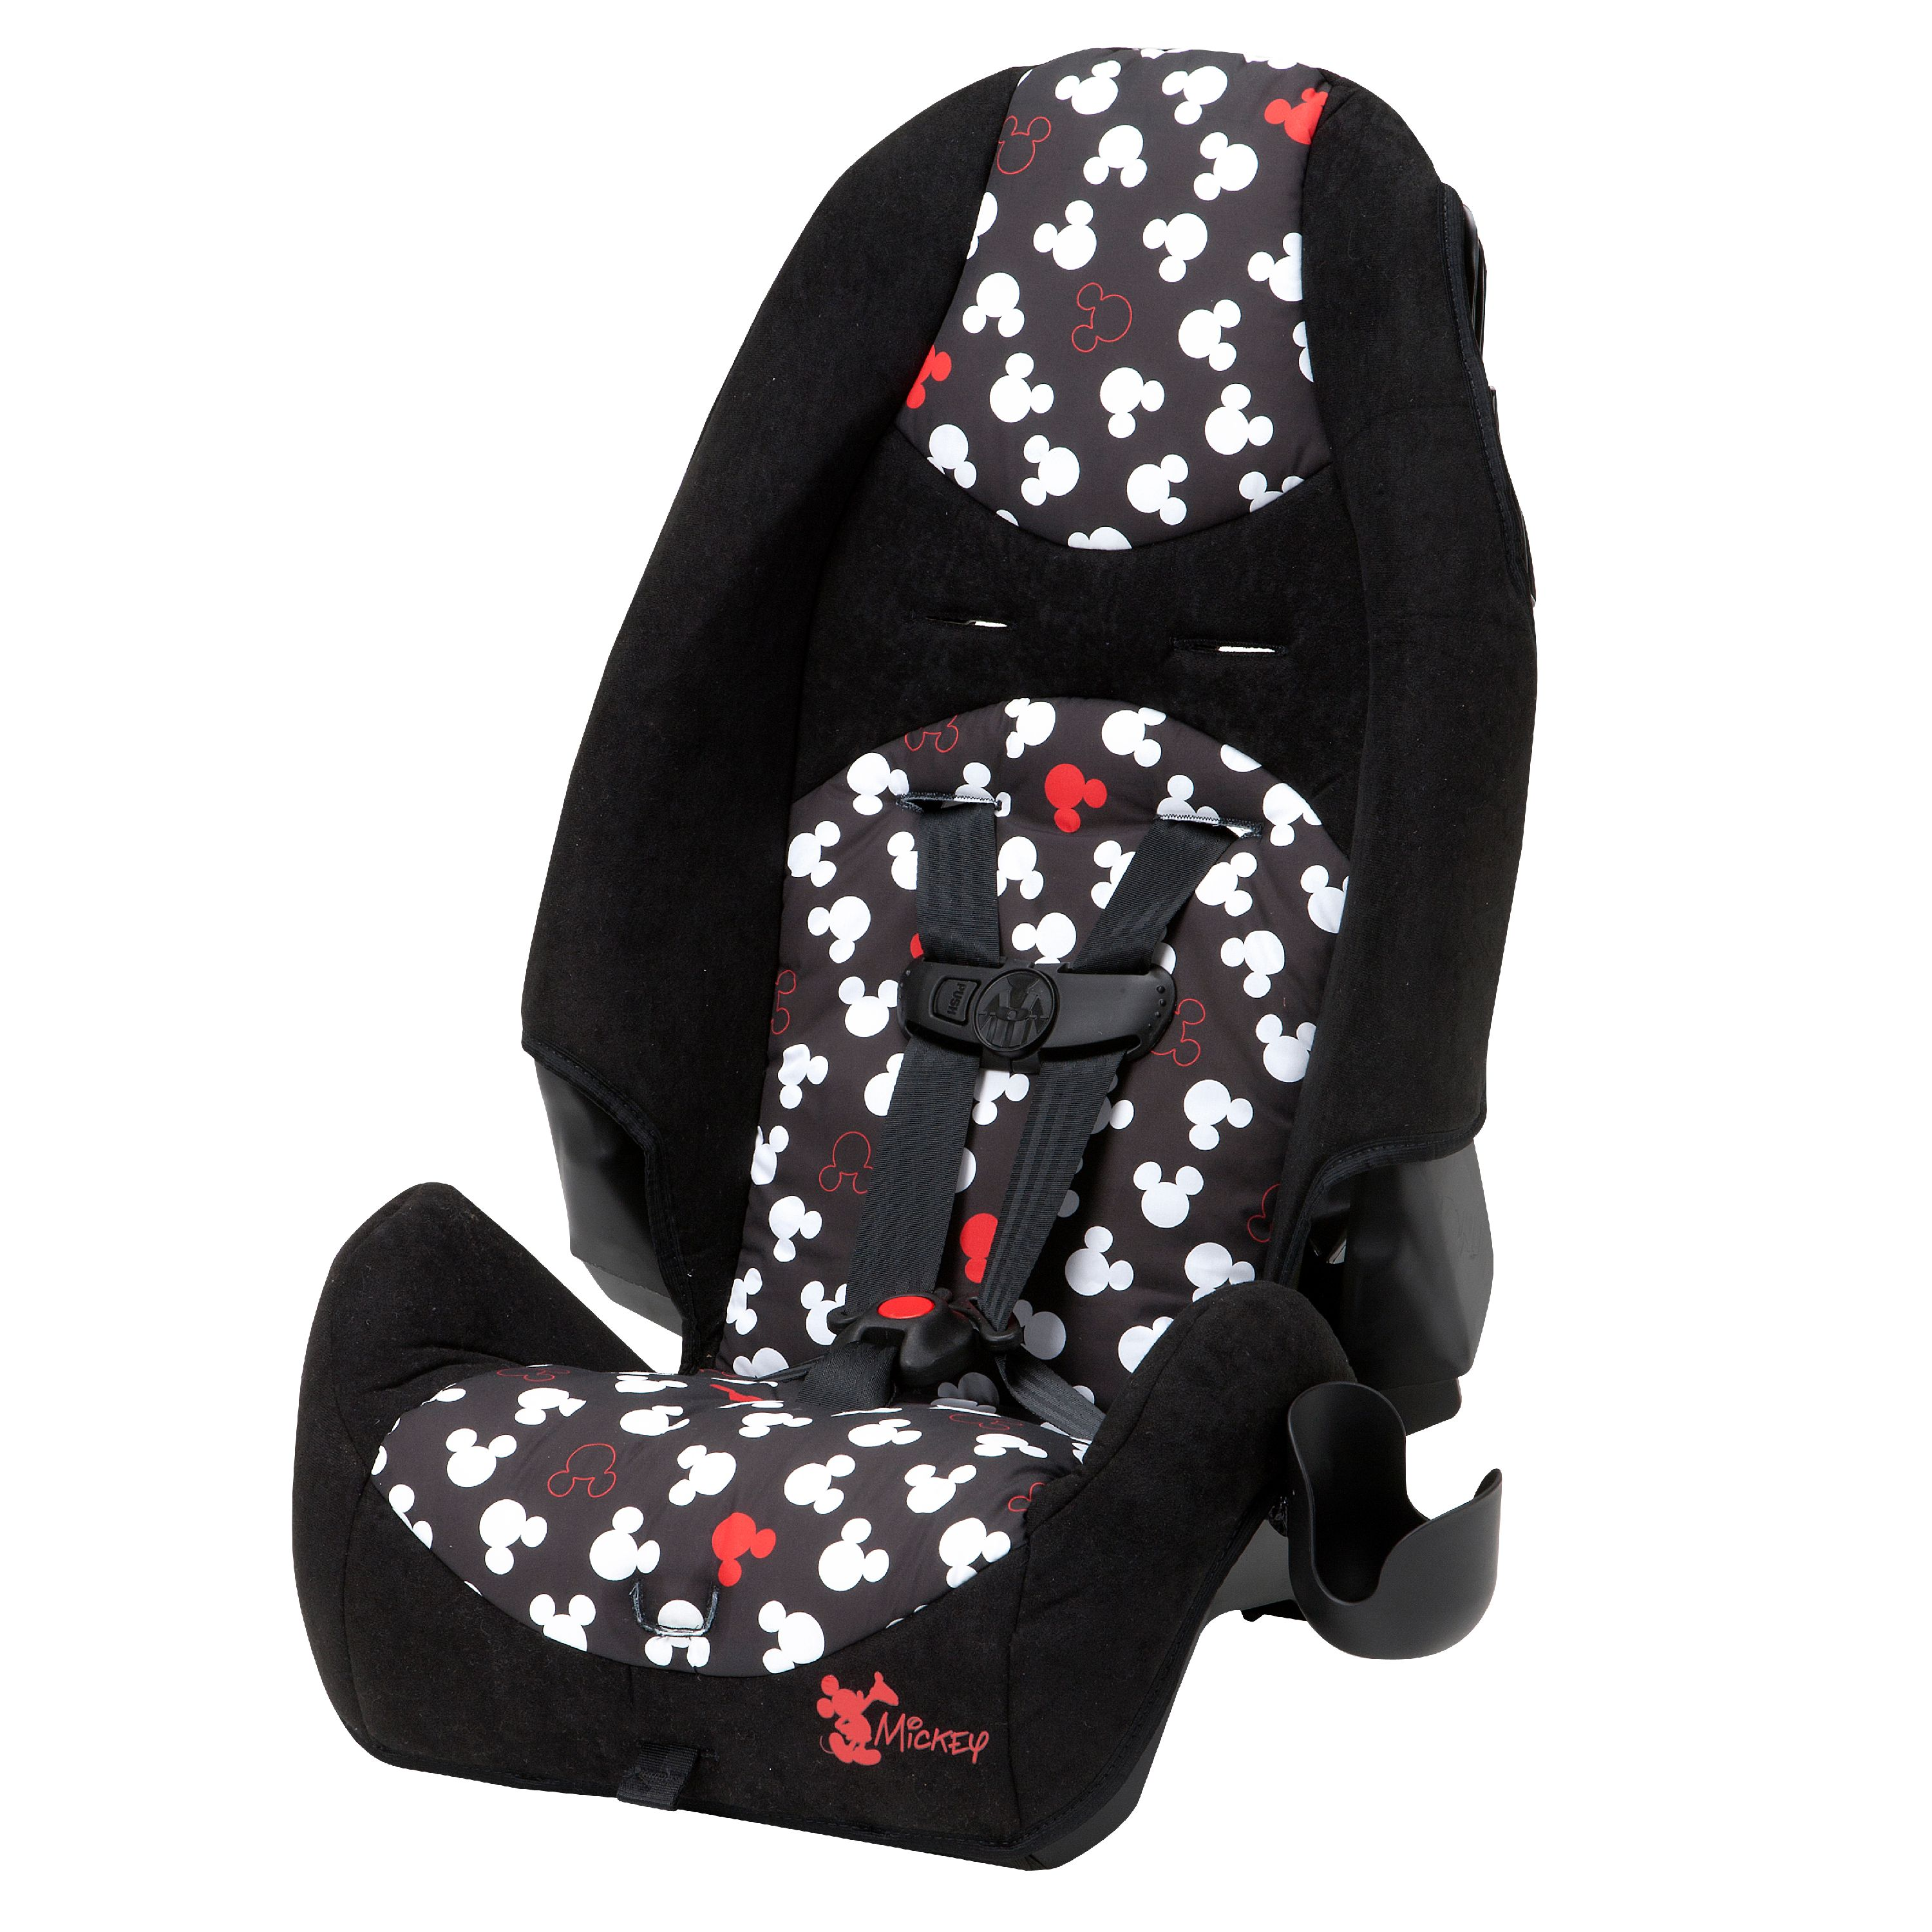 Disney Baby Highback 2 In 1 Booster Car Seat, Pop Up Mickey 2